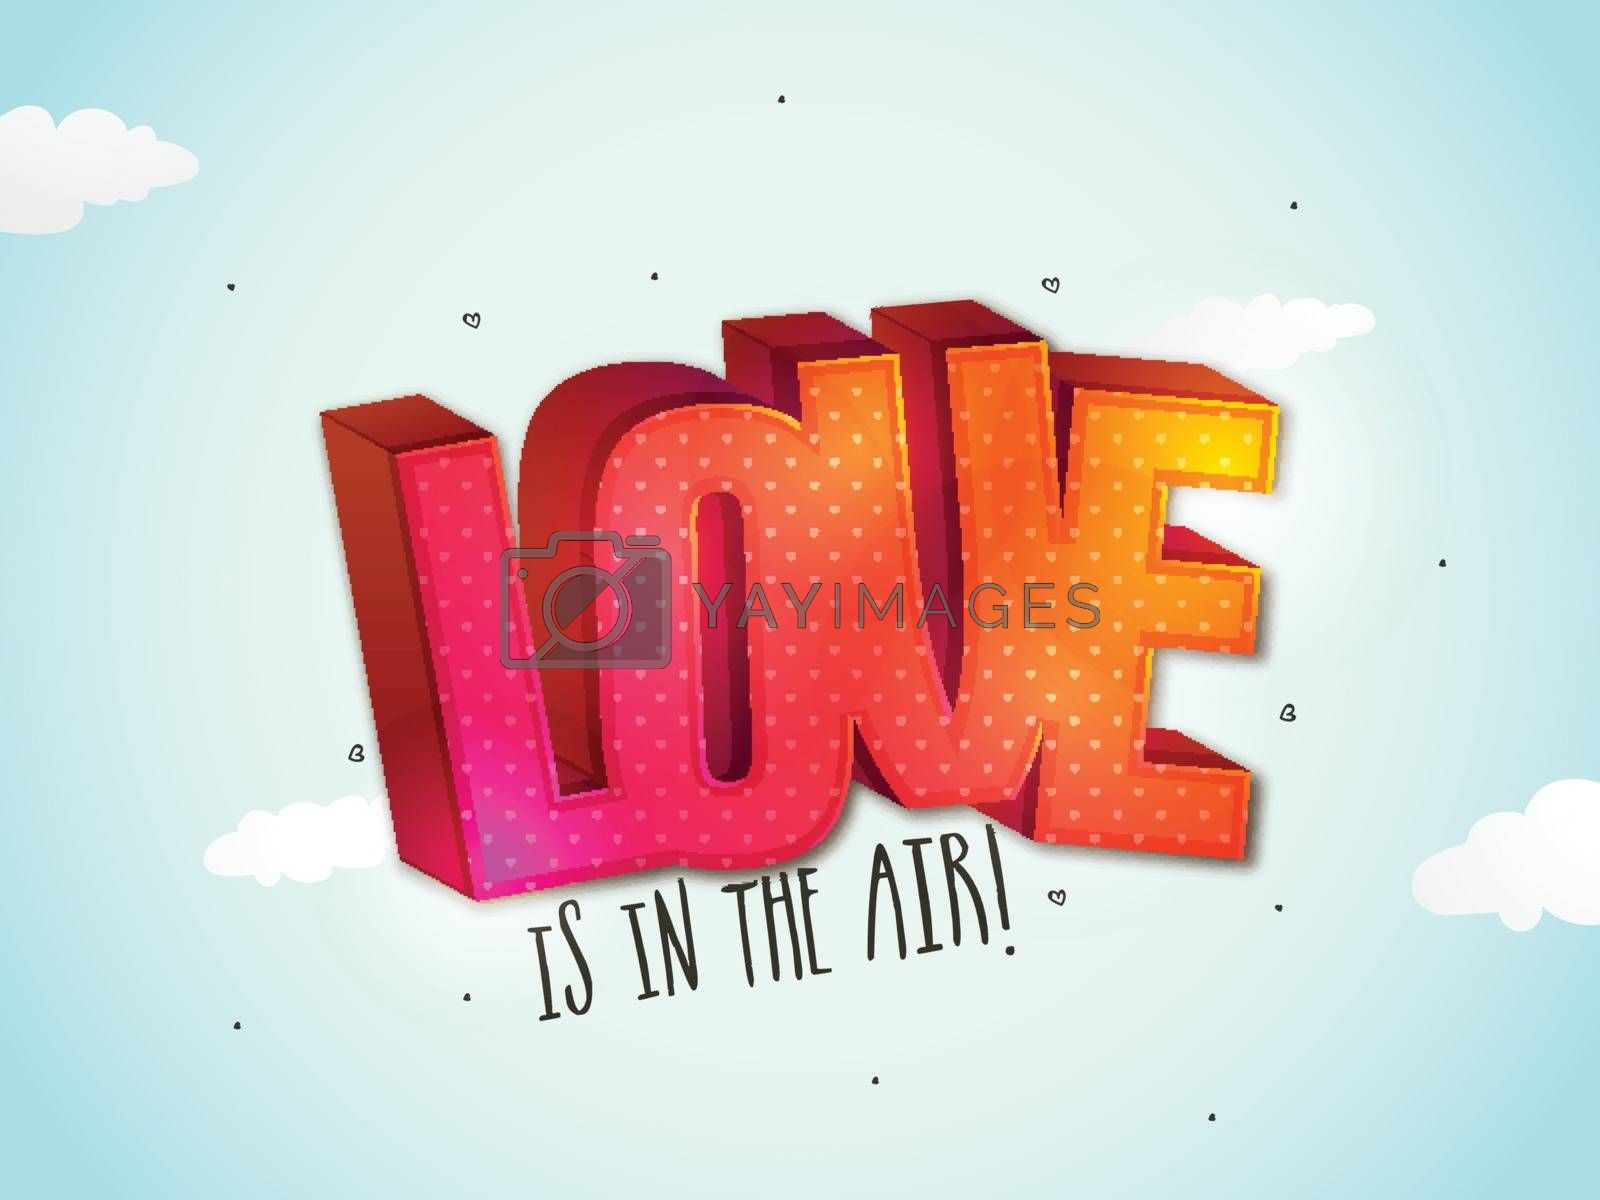 3D colorful Text Love is in the Air on clouds decorated background for Happy Valentine's Day Celebration.